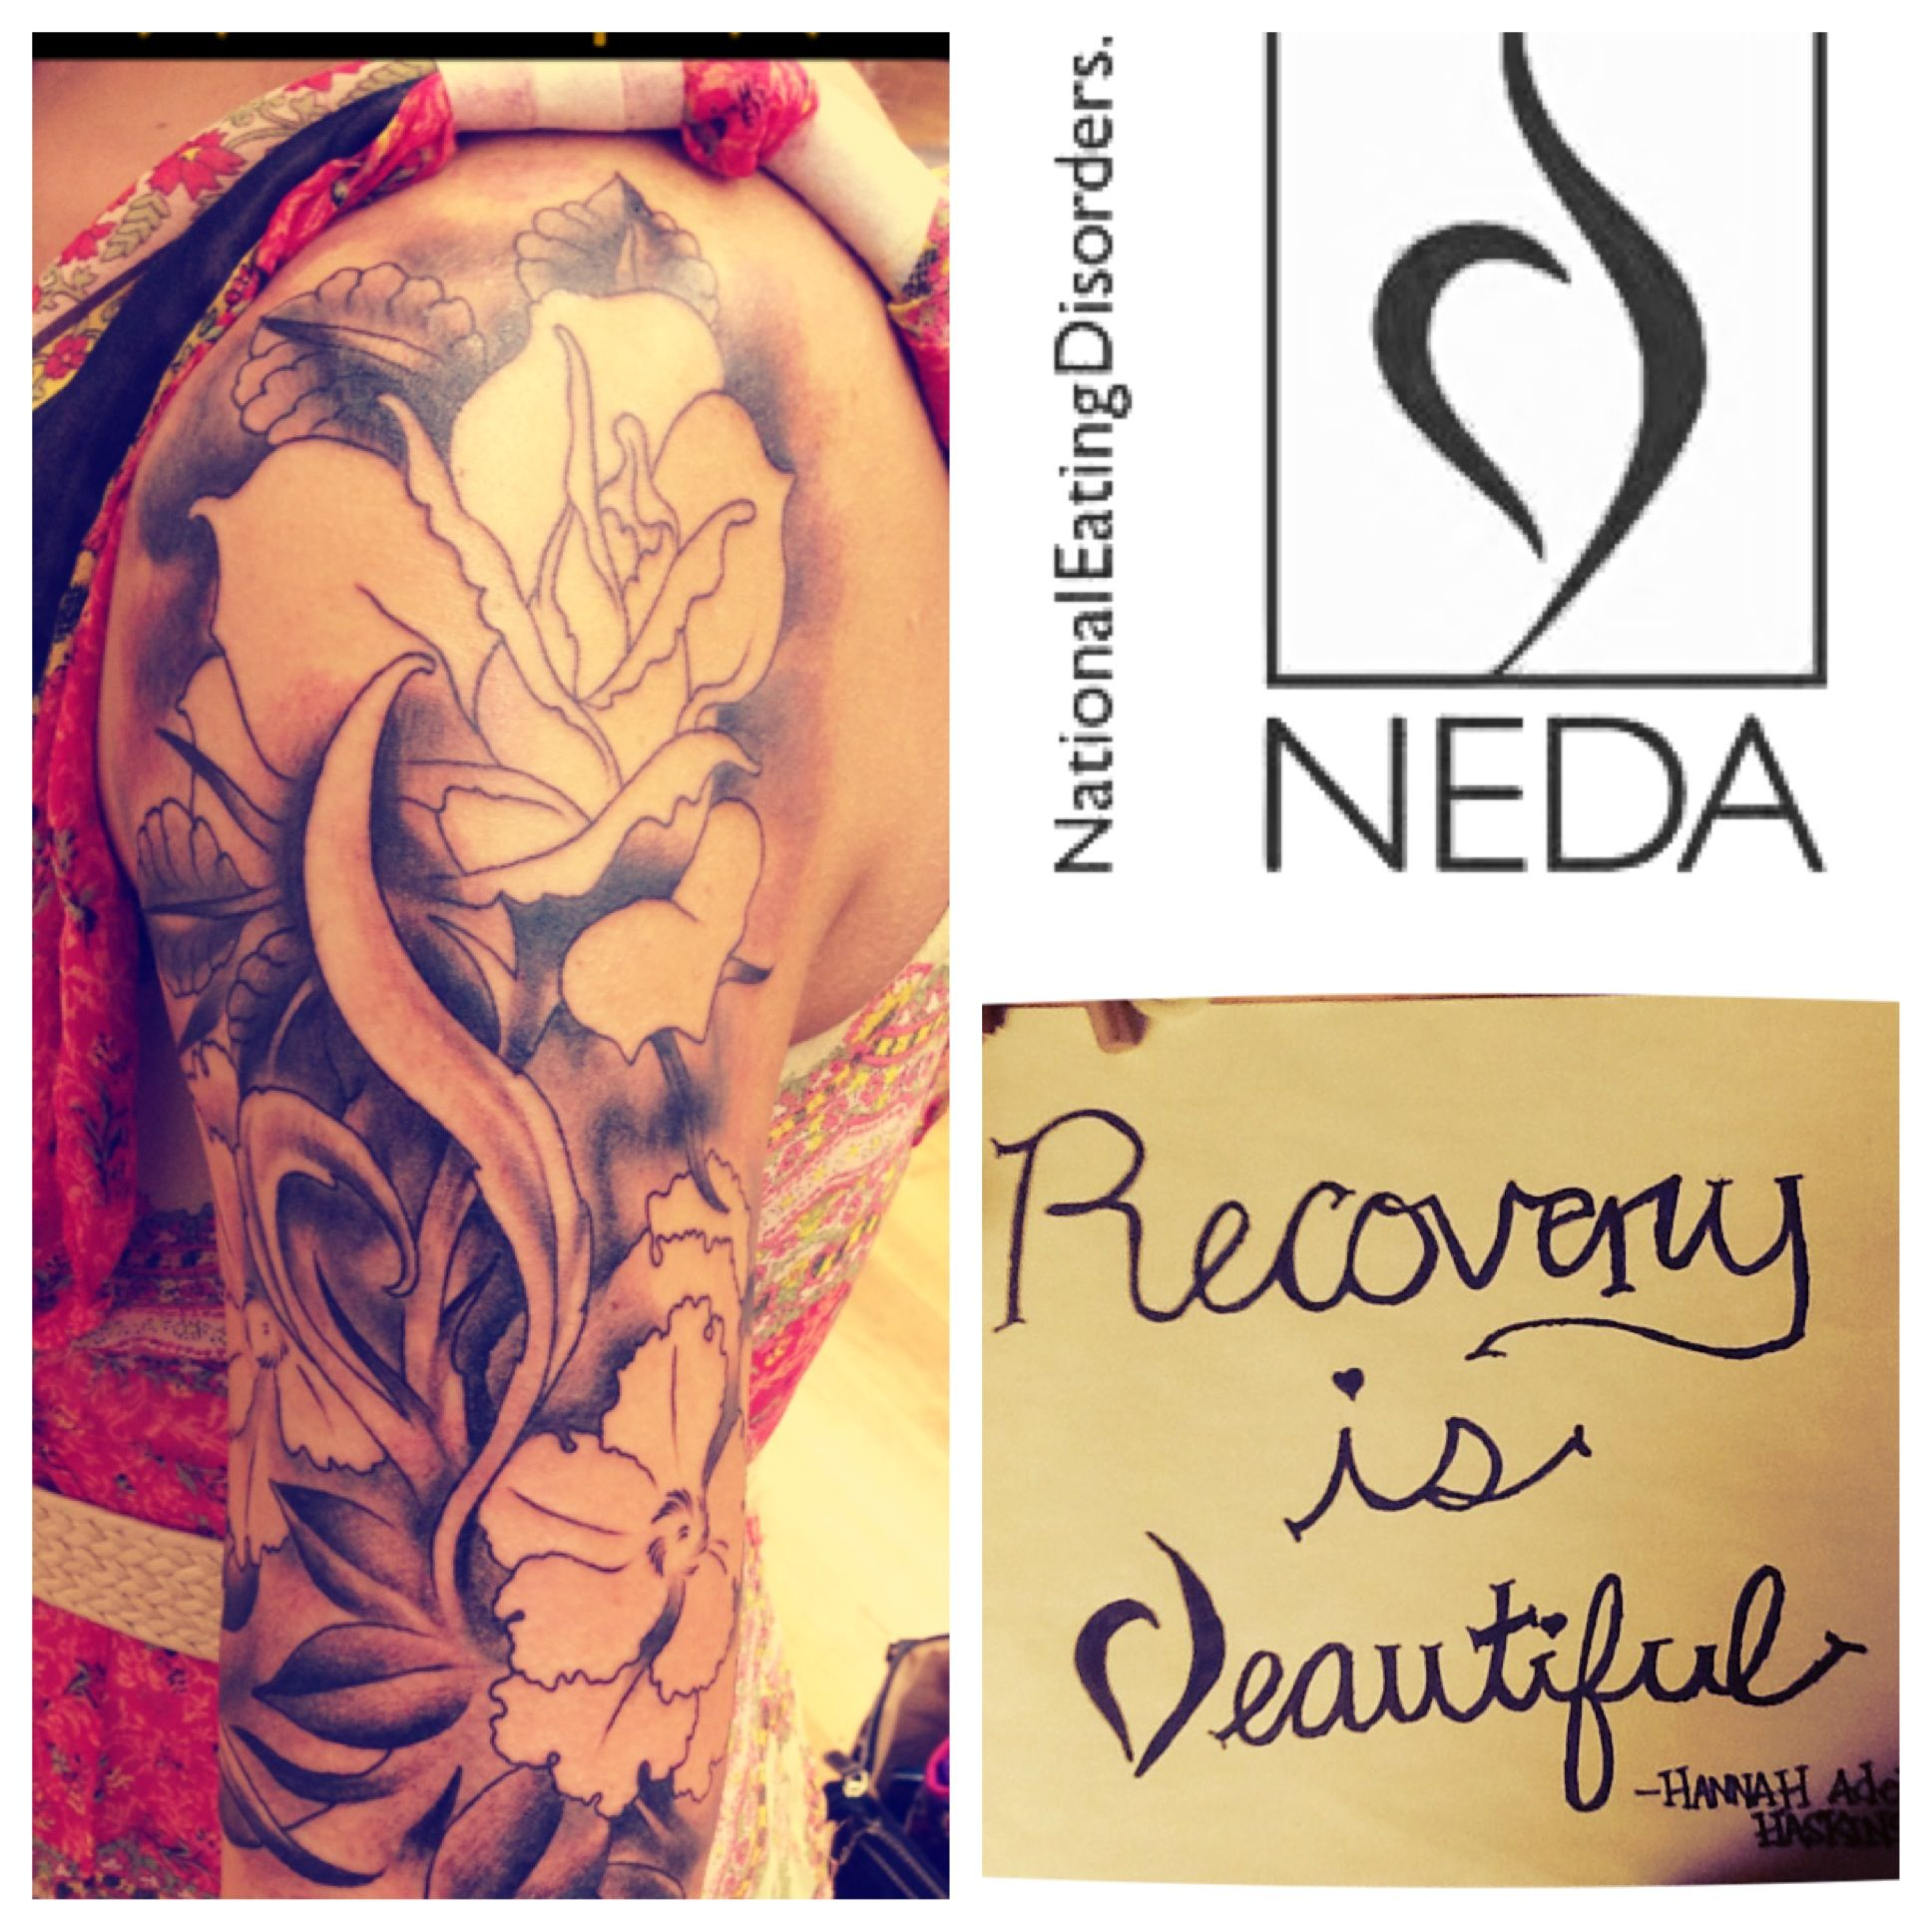 Eating disorder recovery tattoo halfsleeve neda tattoo tattoos eating disorder recovery tattoo halfsleeve neda tattoo biocorpaavc Image collections